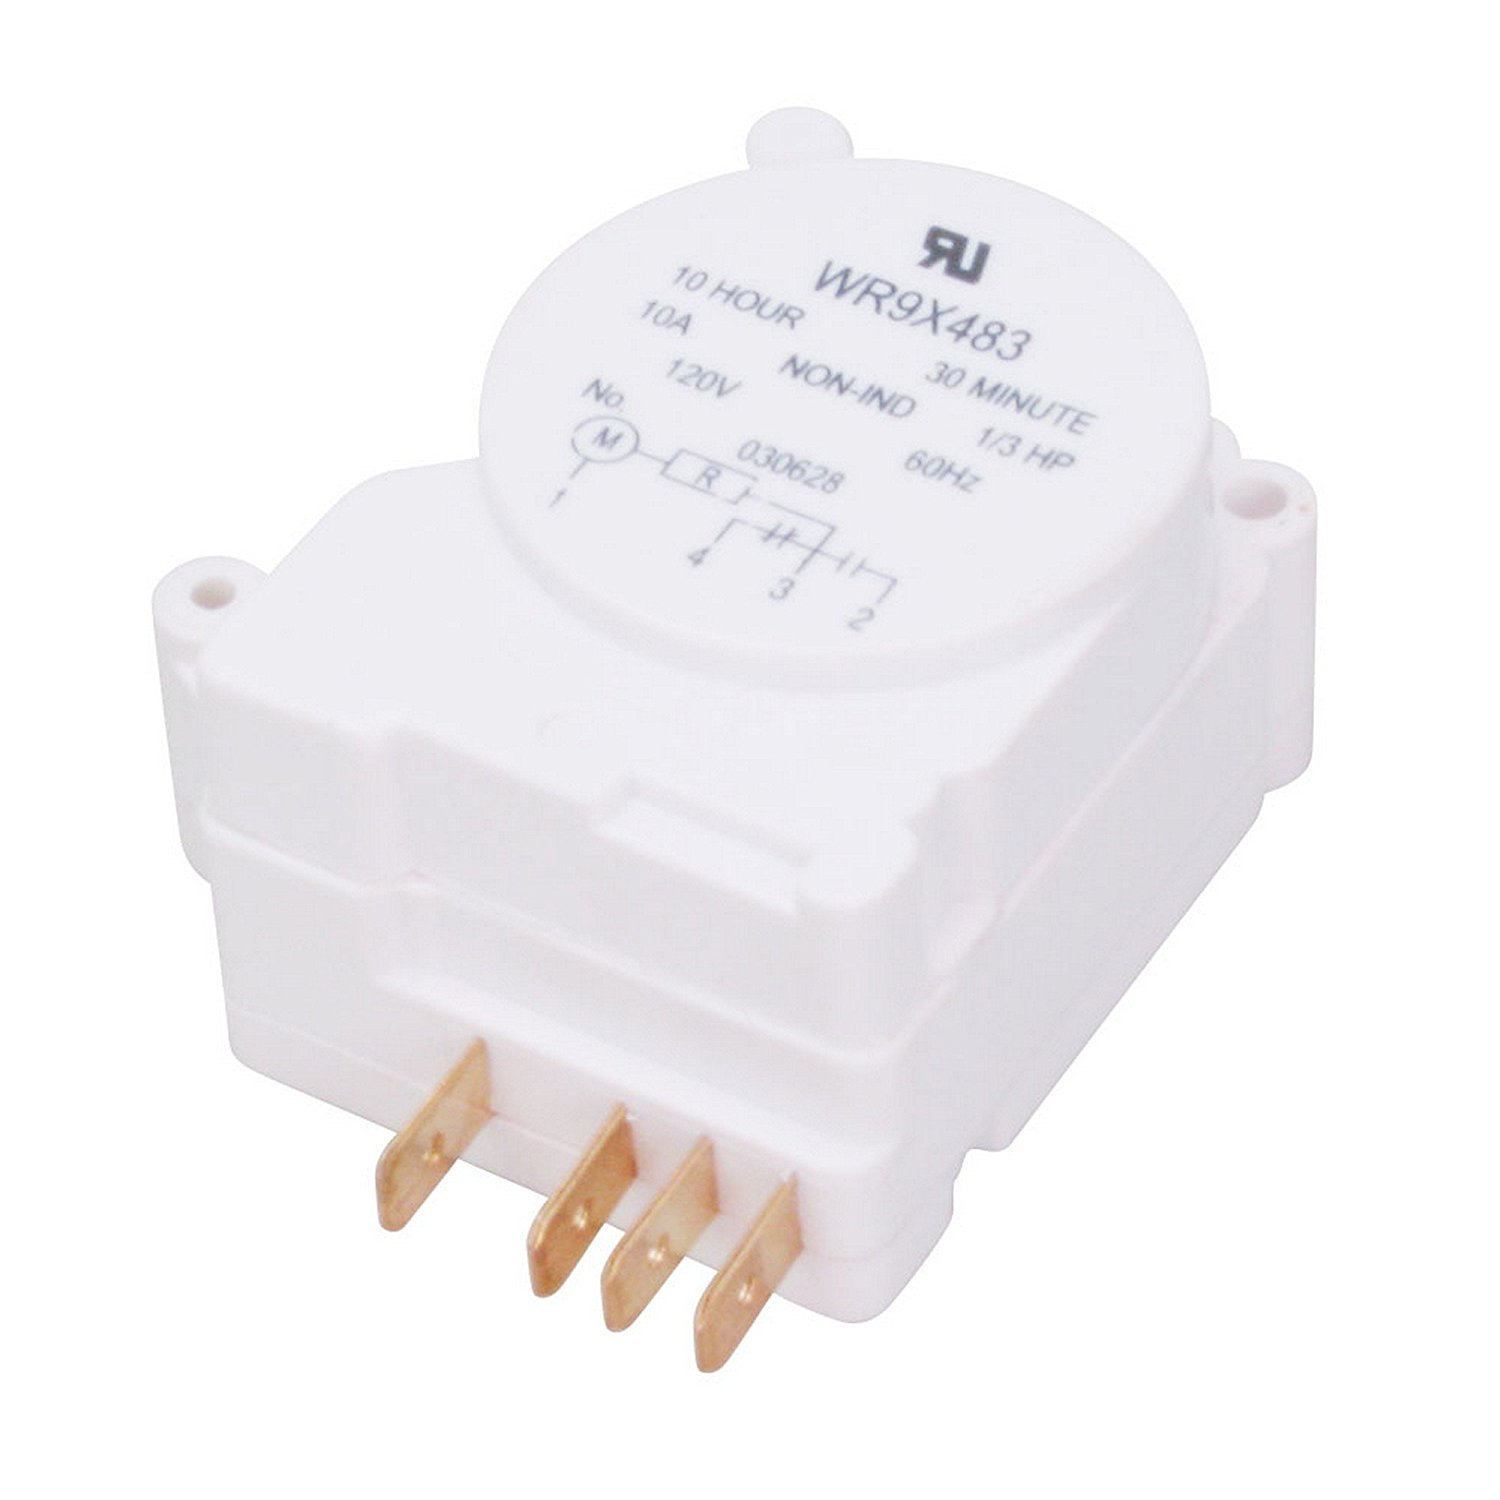 WR9X483 Refrigerator Defrost Timer Replacement for GE, Hotpoing, Kenmore